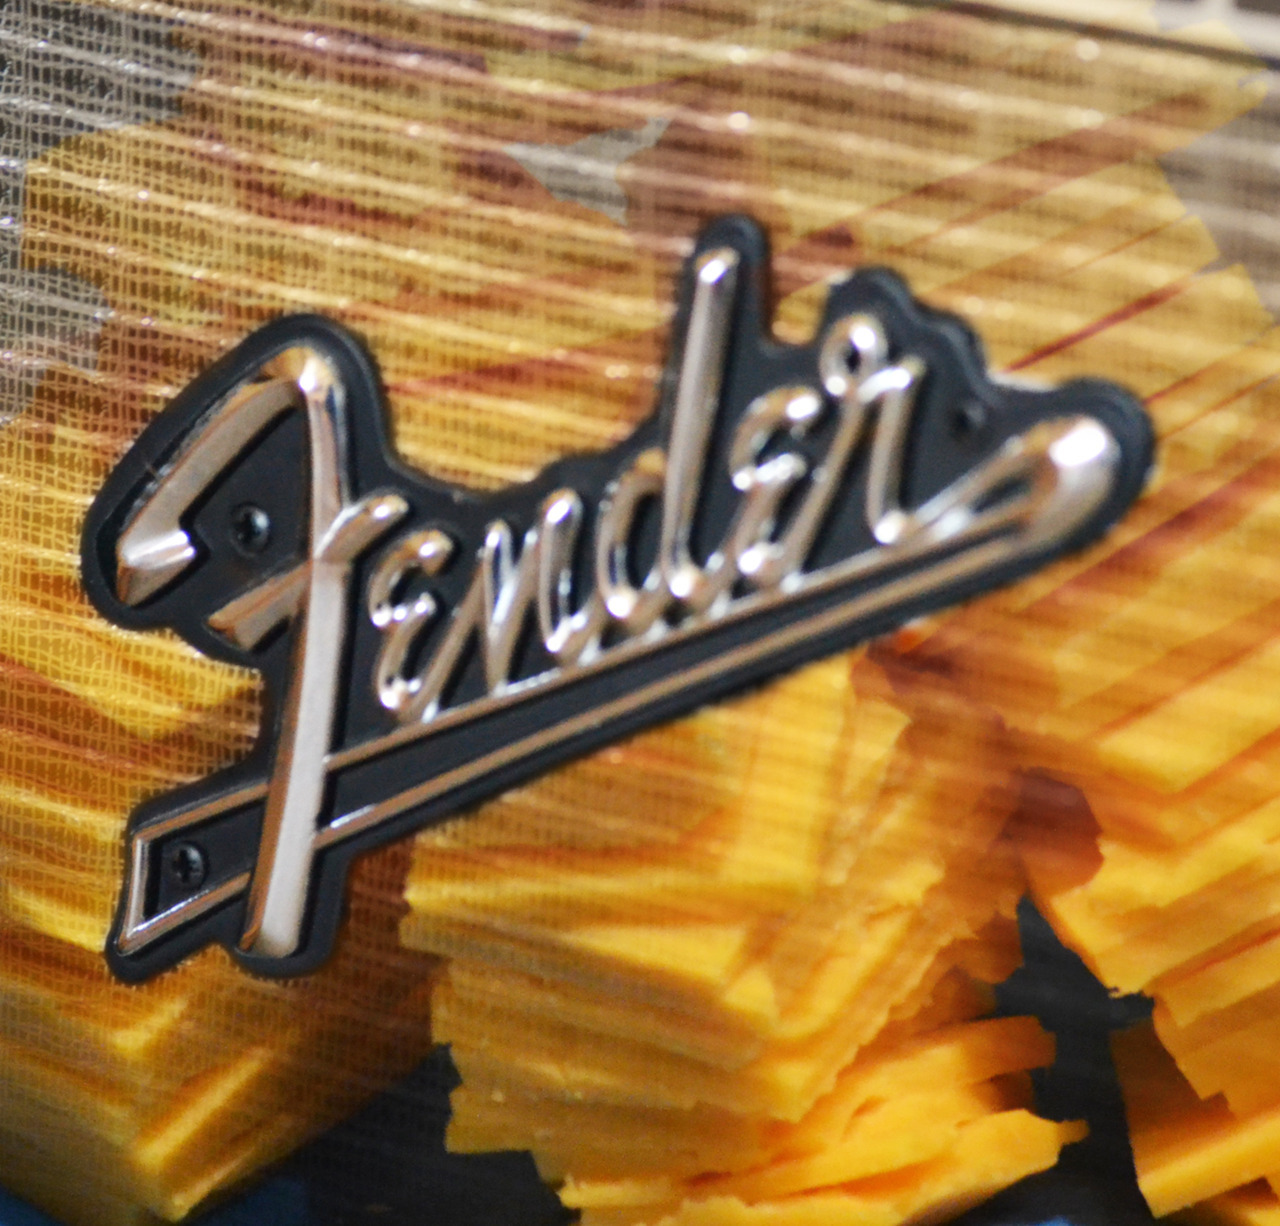 Cheese supporting Fender.